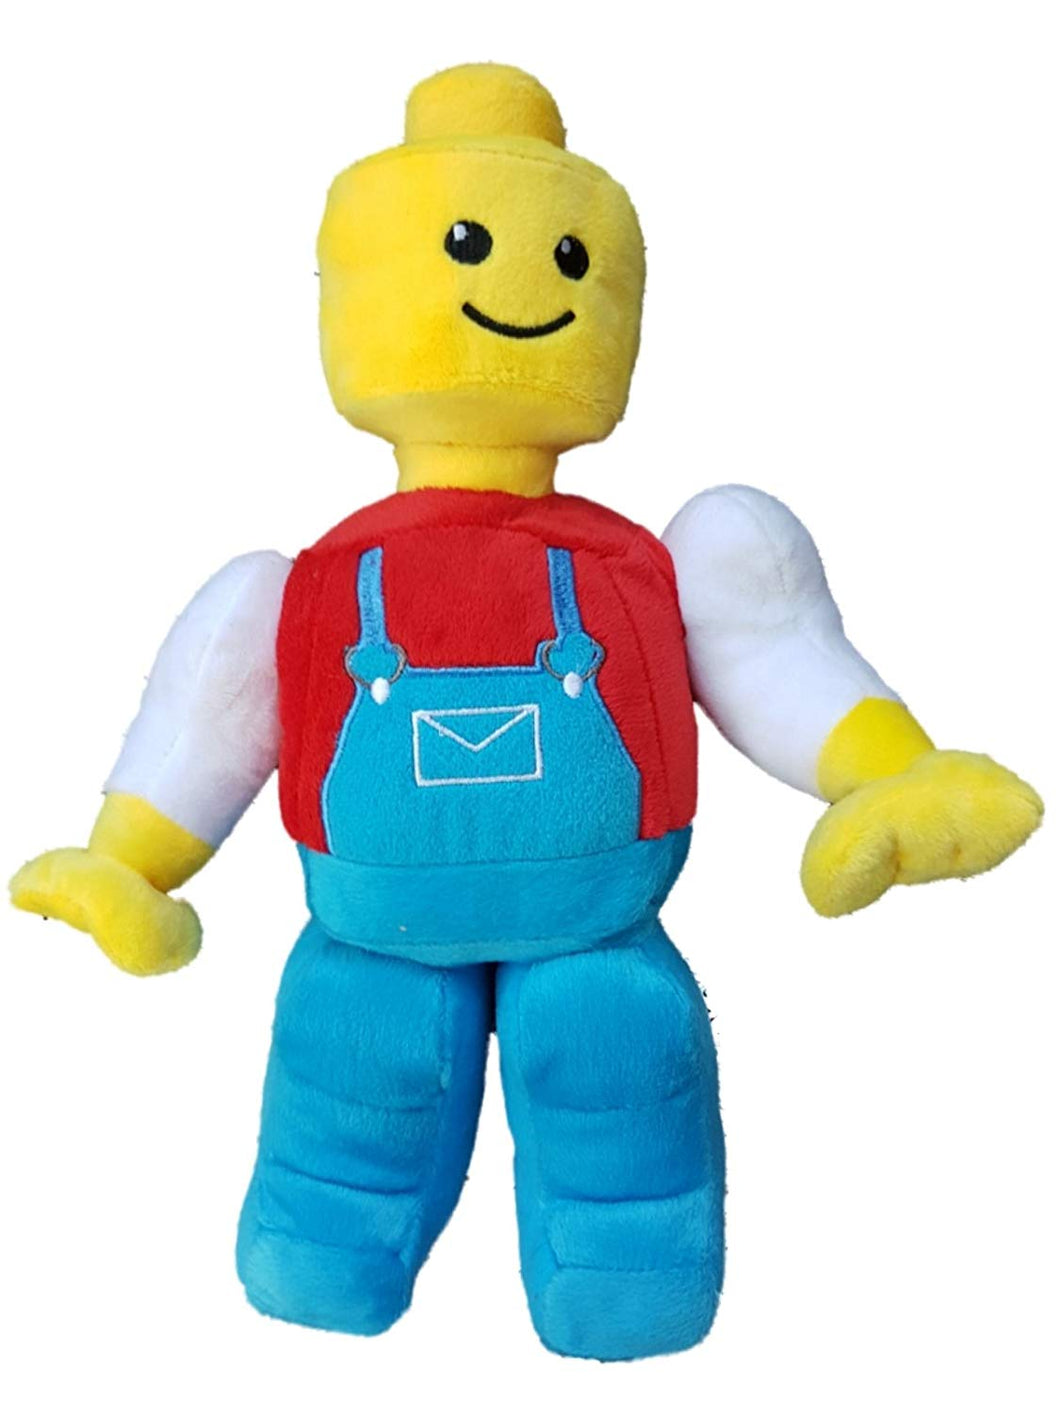 Construction worker Soft Toy 12